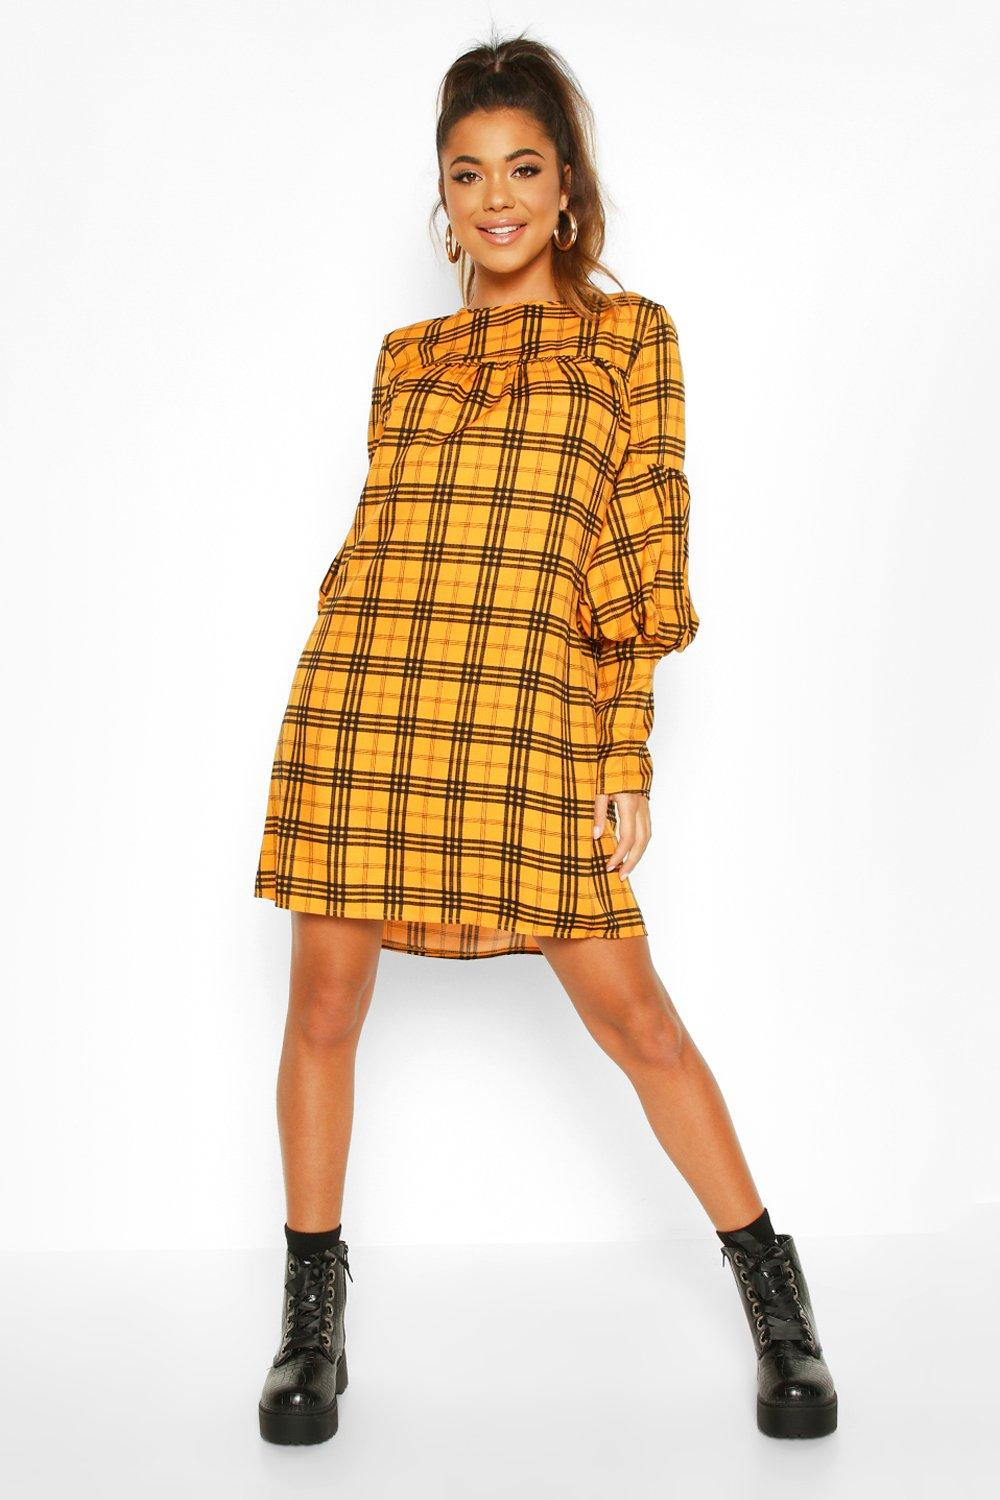 boohoo Womens Volume Sleeve Smock Dress - Yellow - 12, Yellow